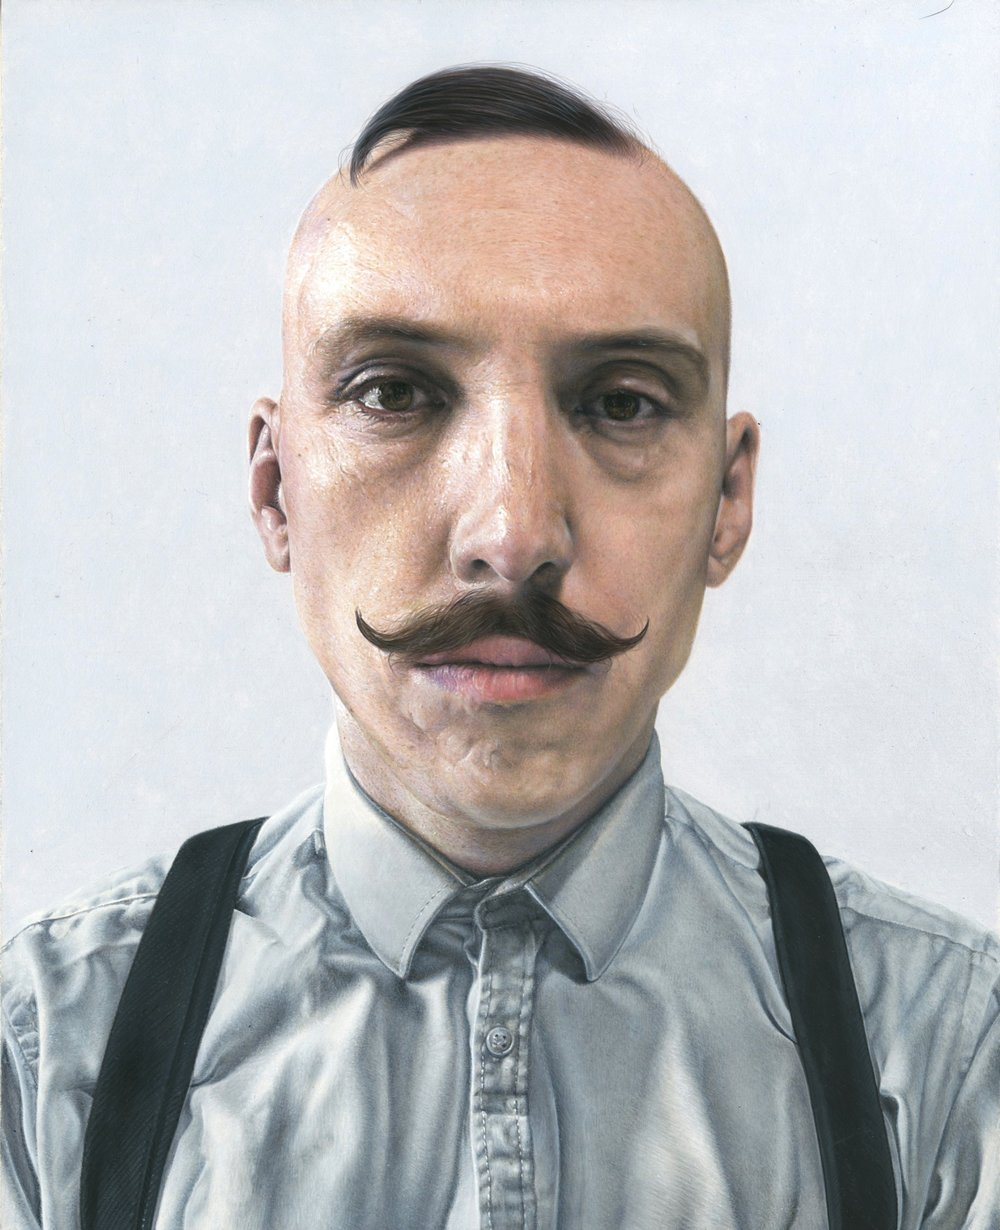 Steve Caldwell, Jamie, acrylic on wood panel, 30 x 24 cm,  http://www.steve-caldwell.co.uk